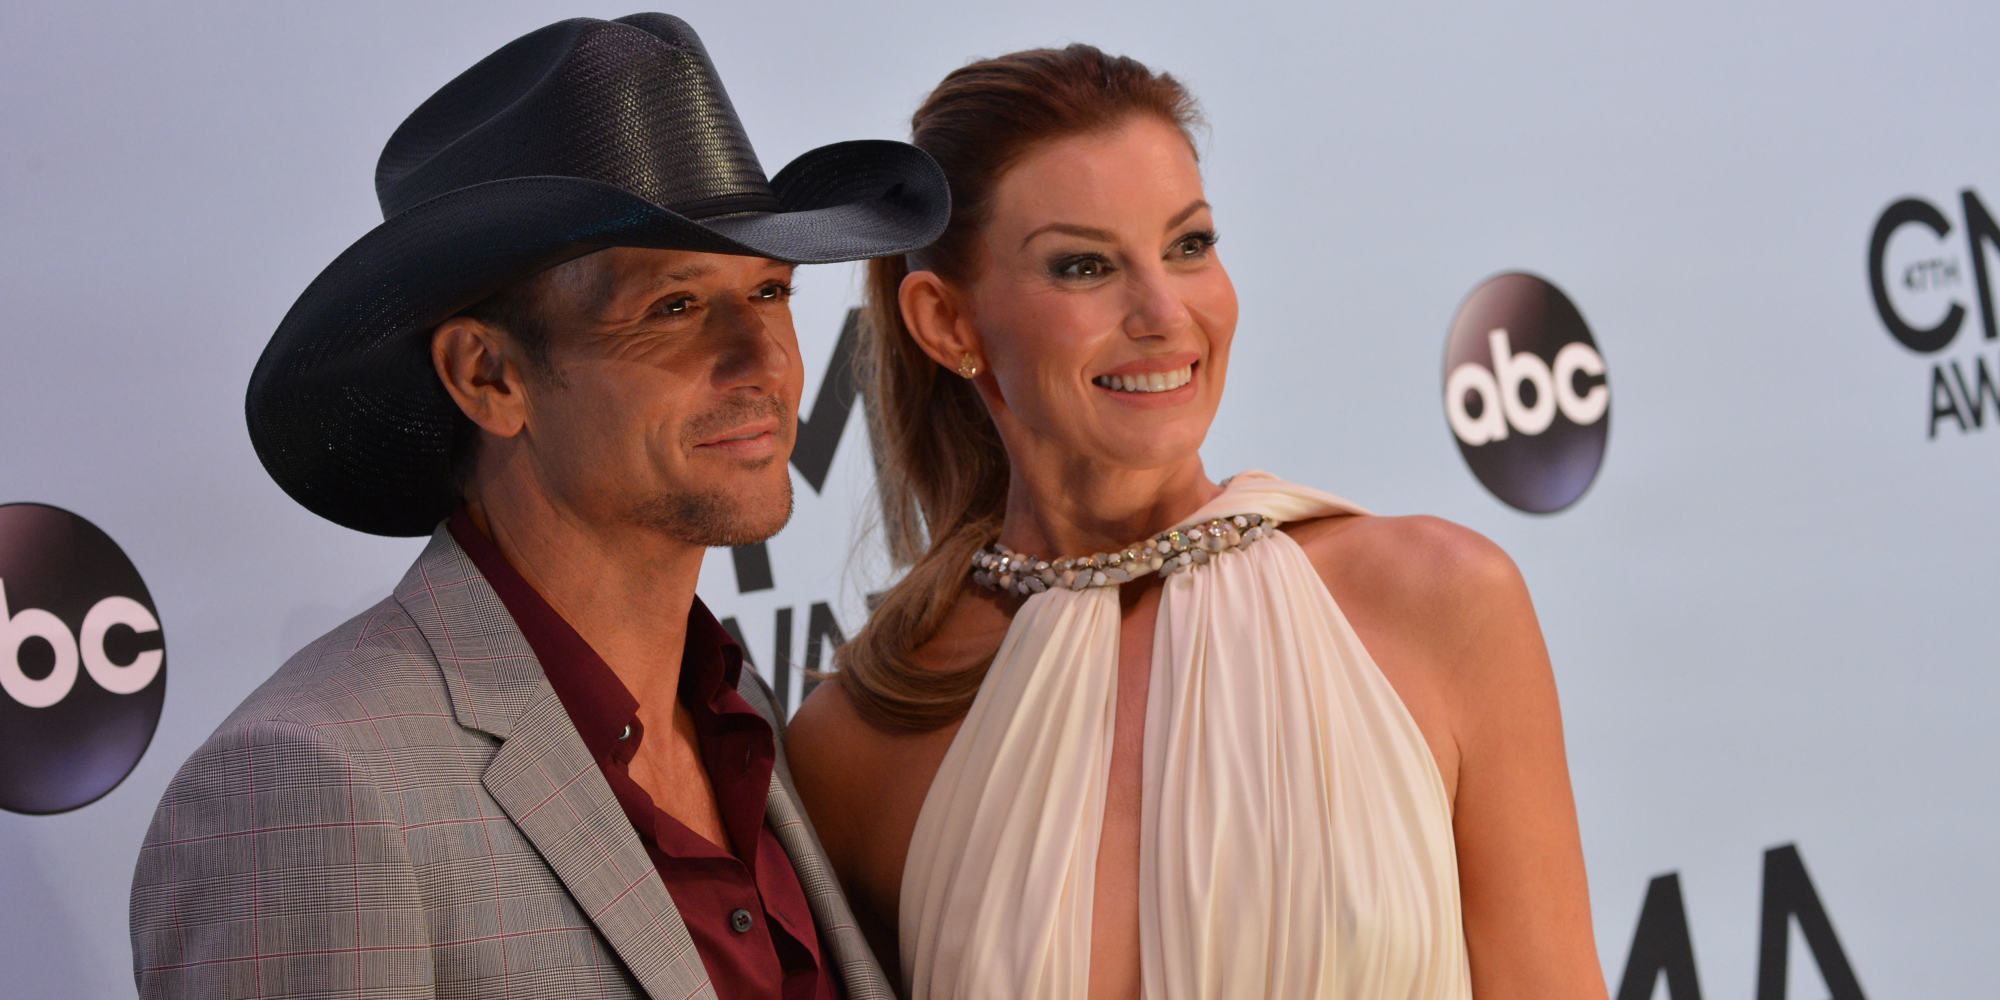 faith divorced singles Tim mcgraw and faith hill are one of country's  how did tim mcgraw and faith hill meet they were dating other  faith had just divorced daniel hill and tim was .